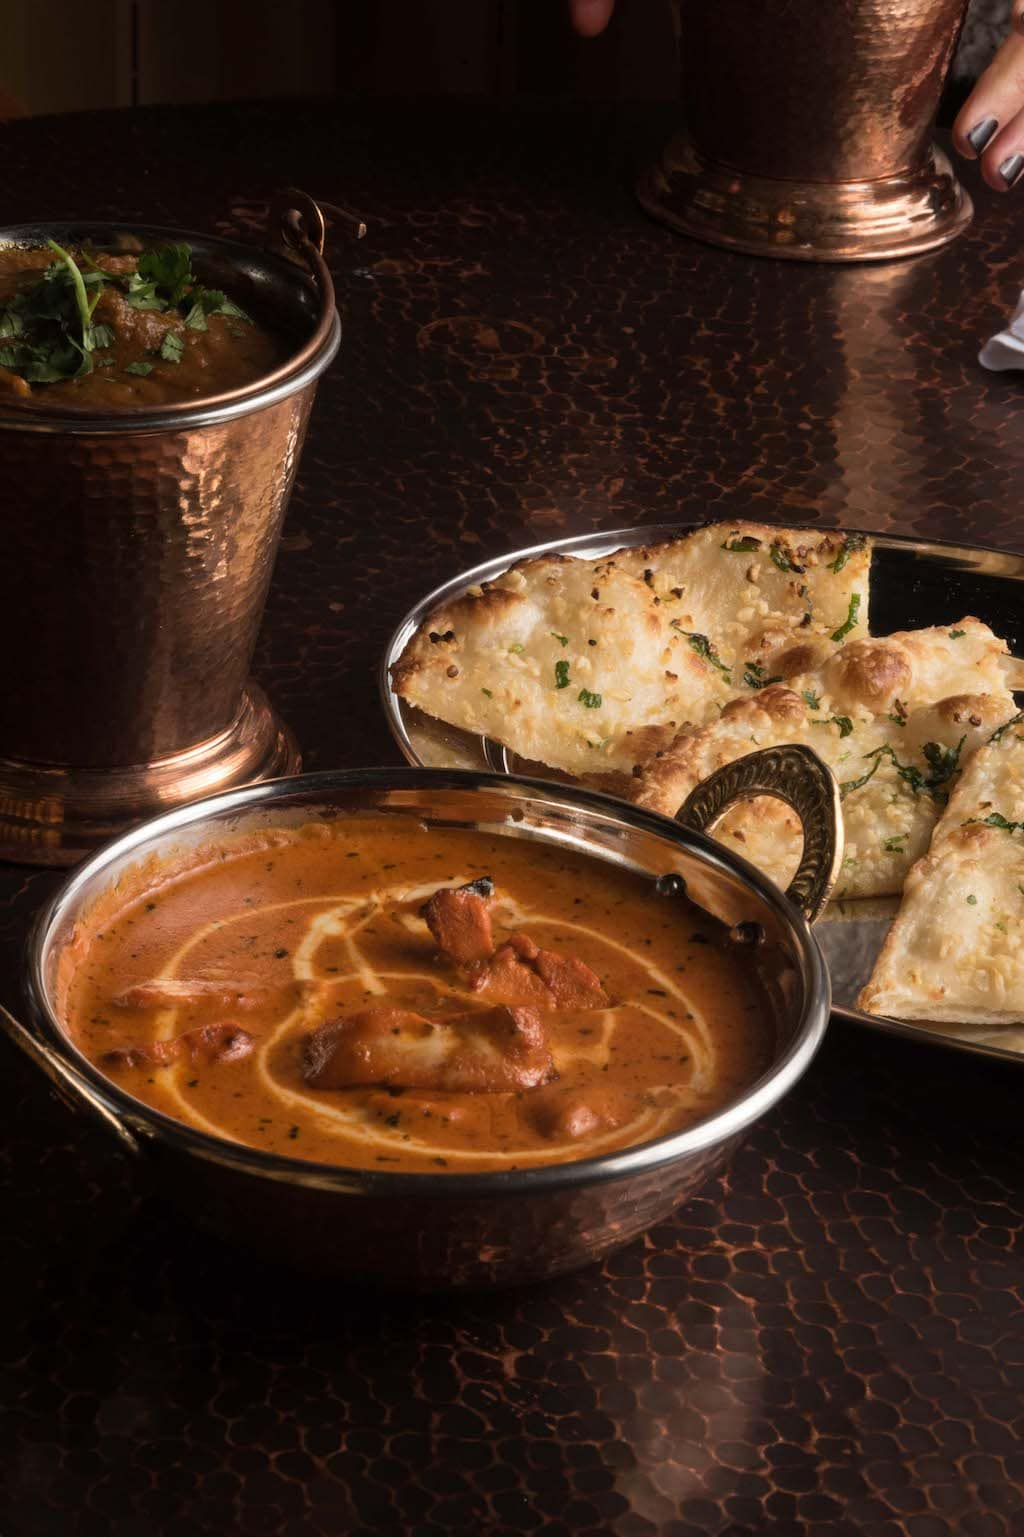 409 Indian restaurant indien vieux port old port McGill montreal